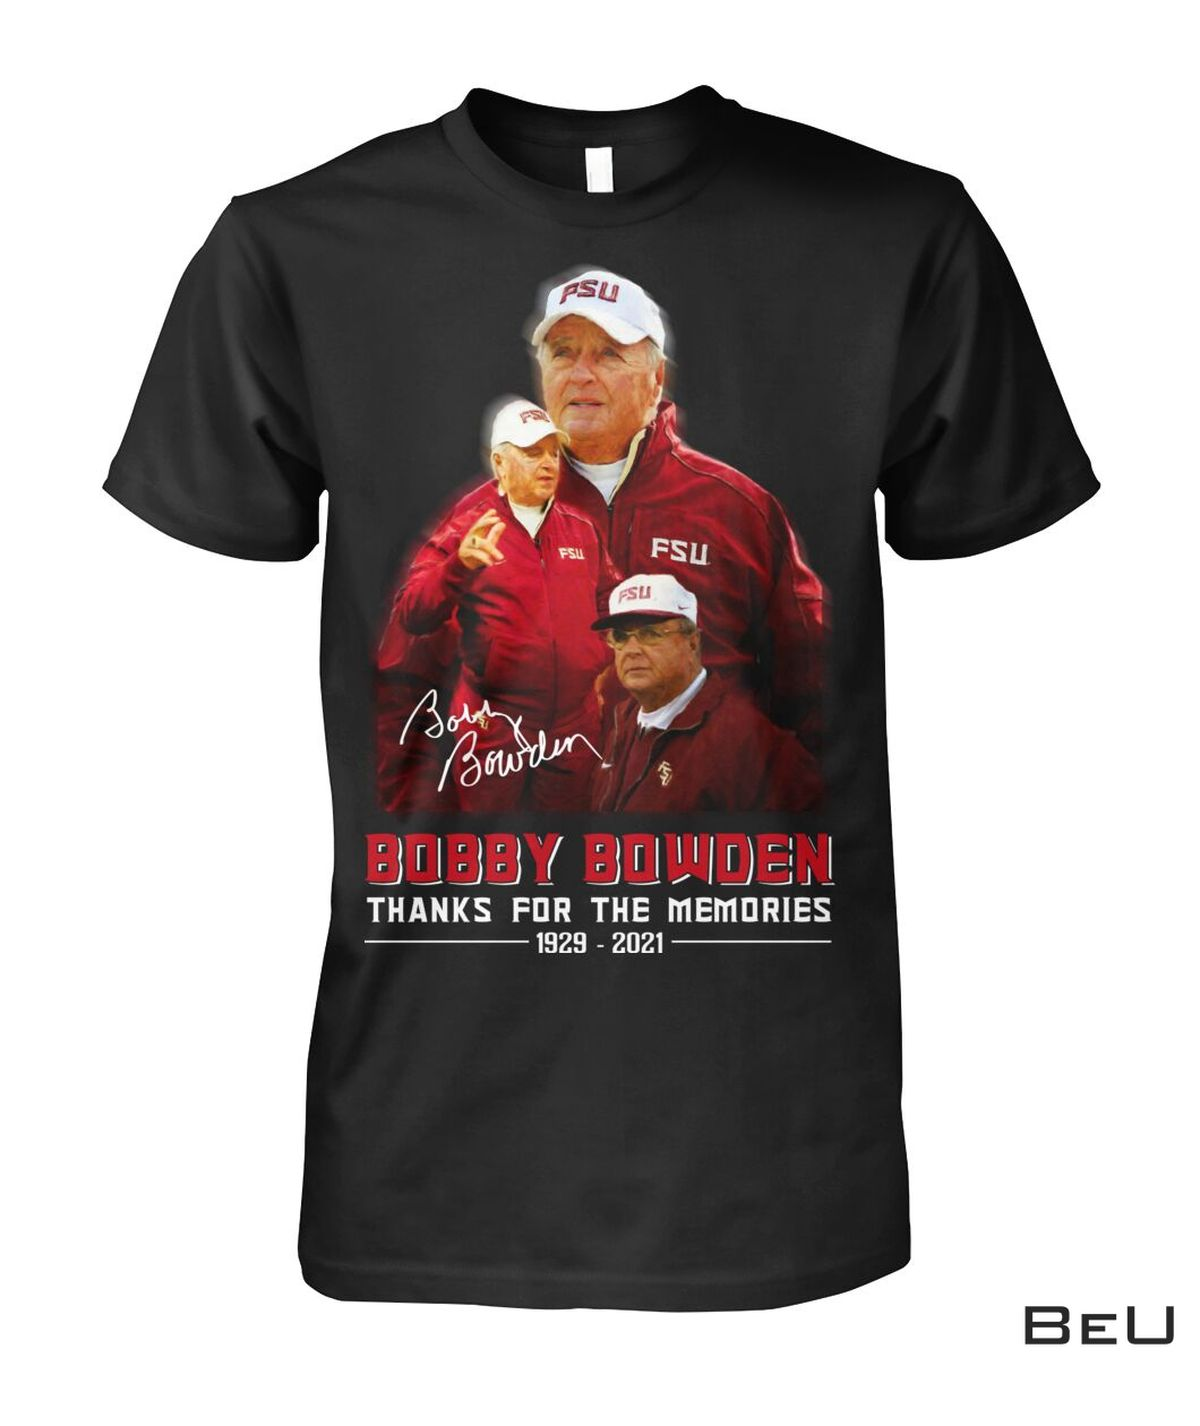 Adult Bobby Bowden Thanks For The Memories Shirt